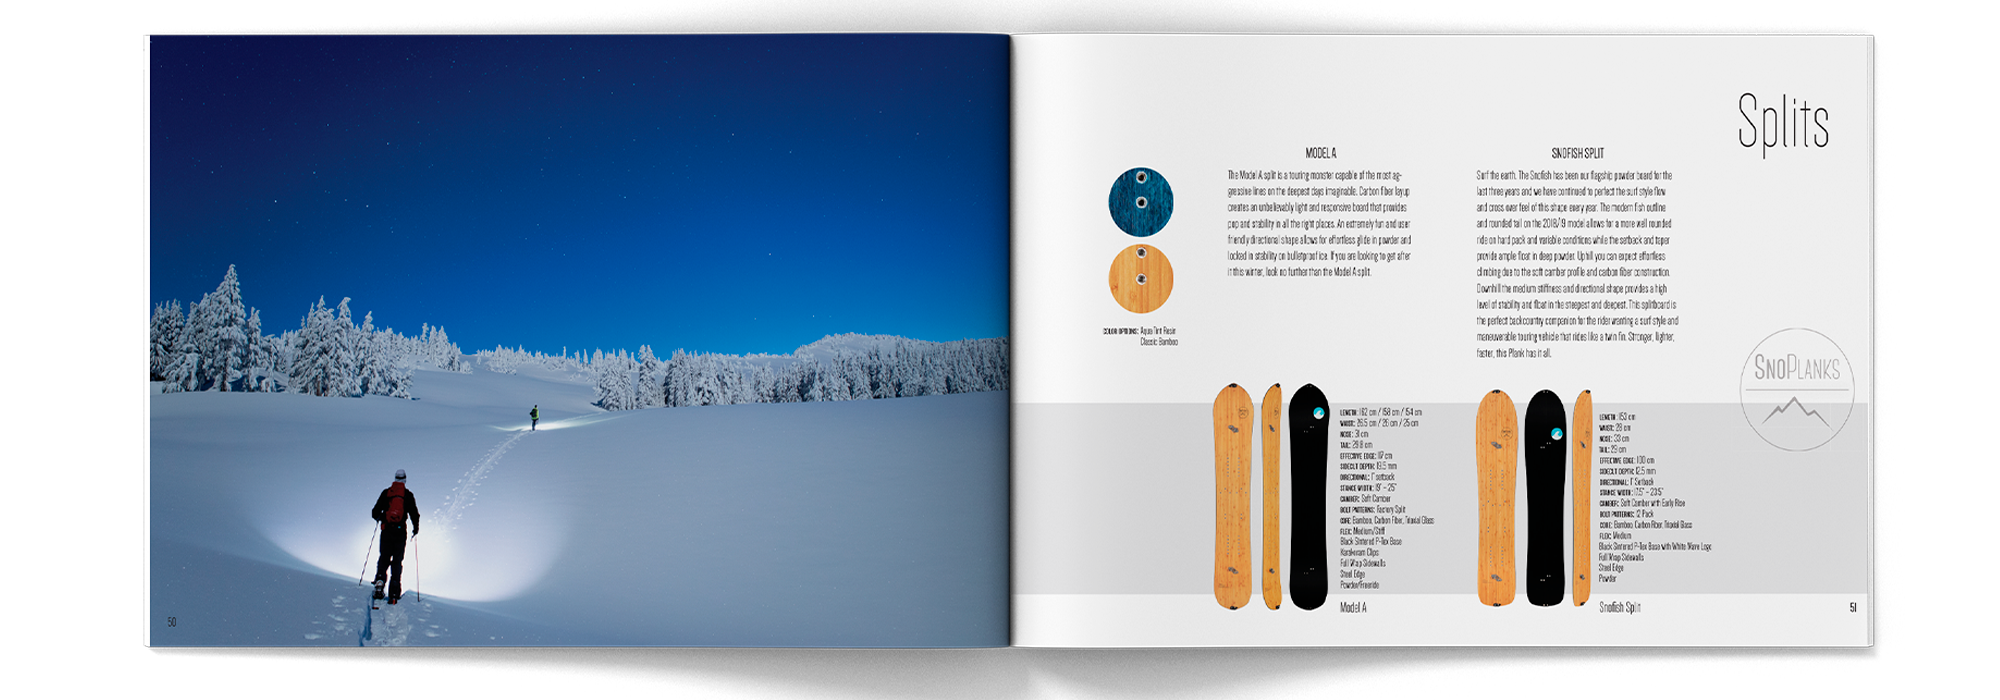 SnoPlanks product catalog lookbook